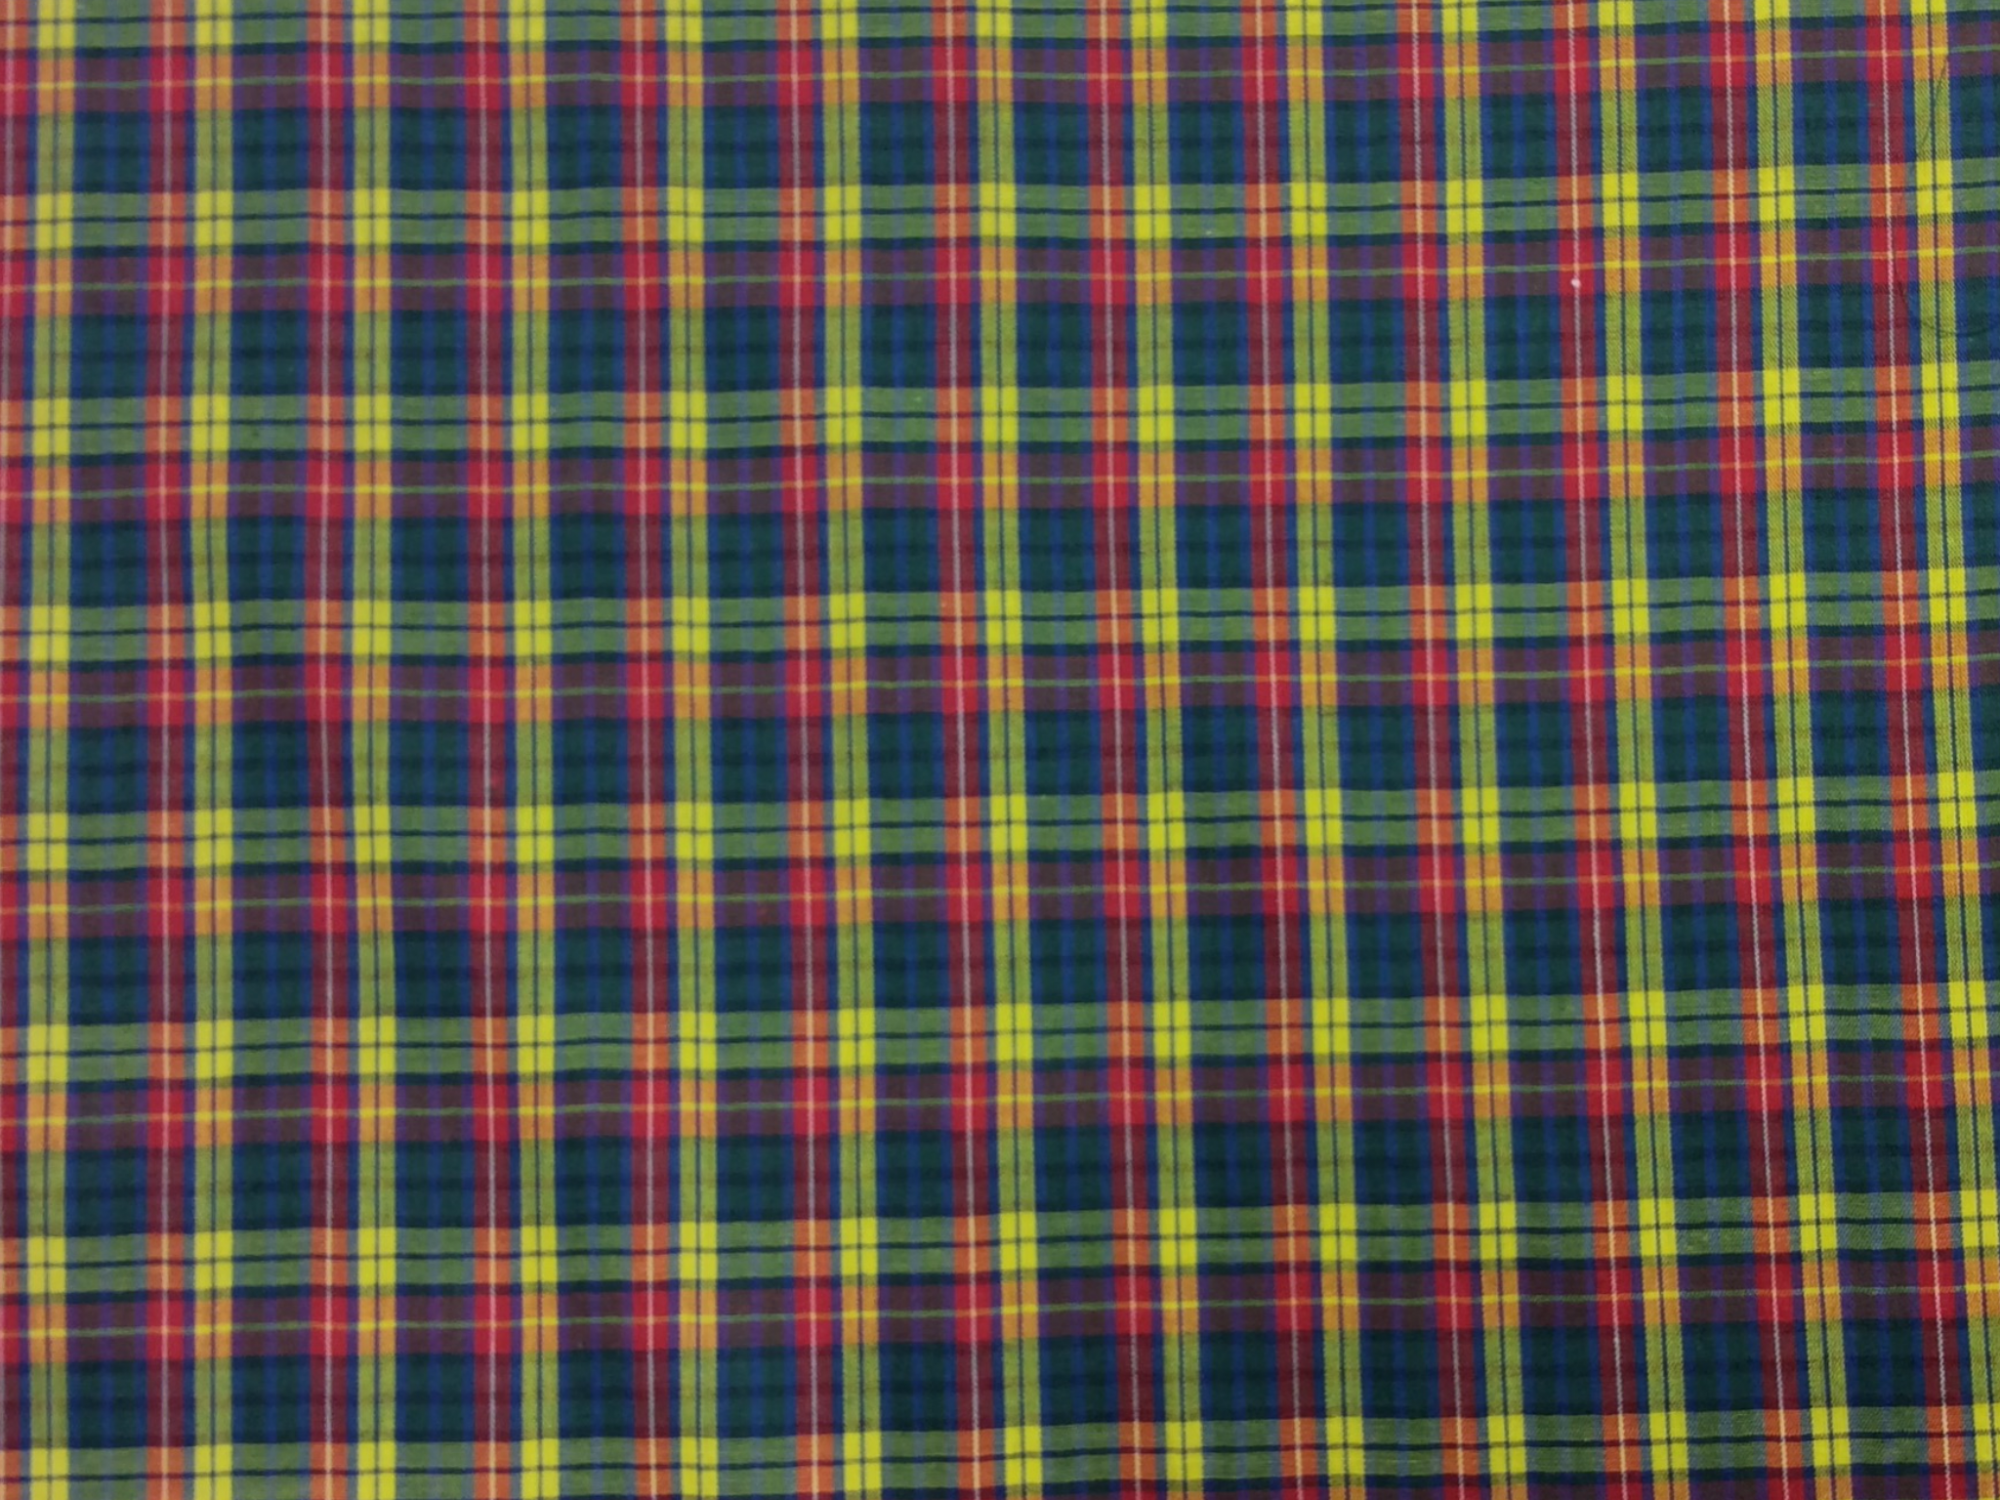 Tartan Plaid Prince Charles Apparel Fabric Yarn Dyed Fabric FTP02